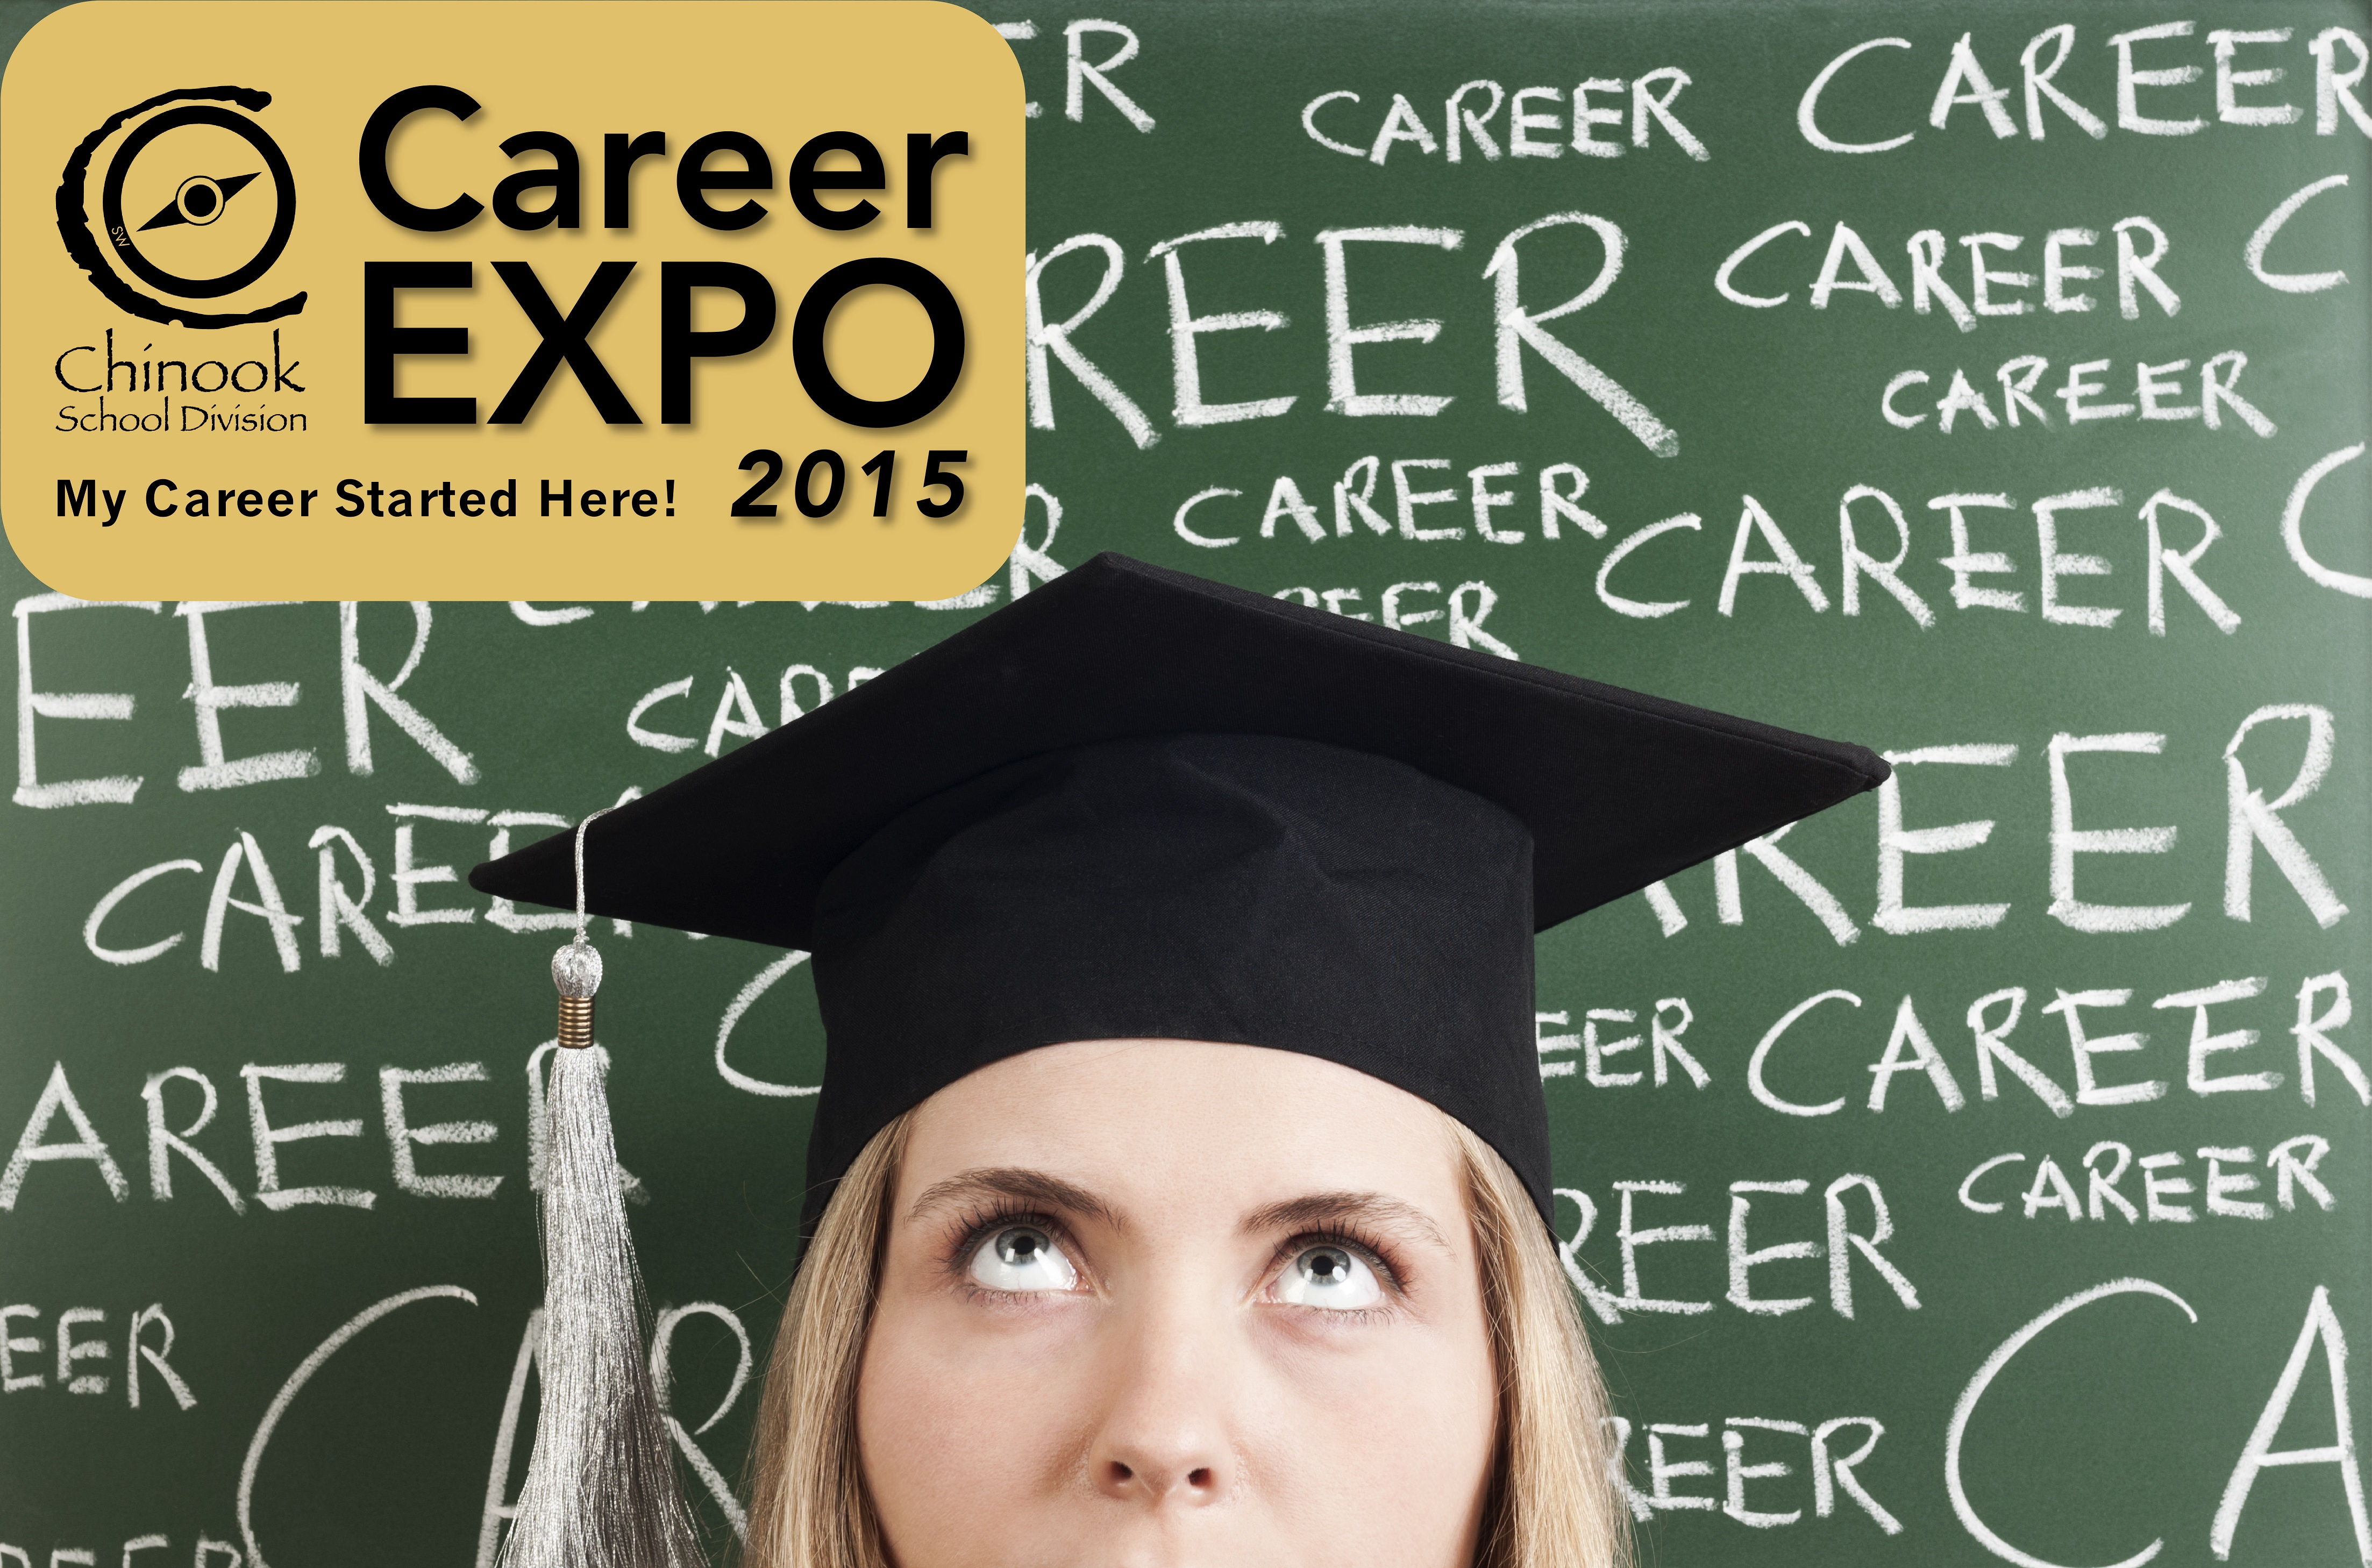 Career Expo 2015 promo image-02.jpg